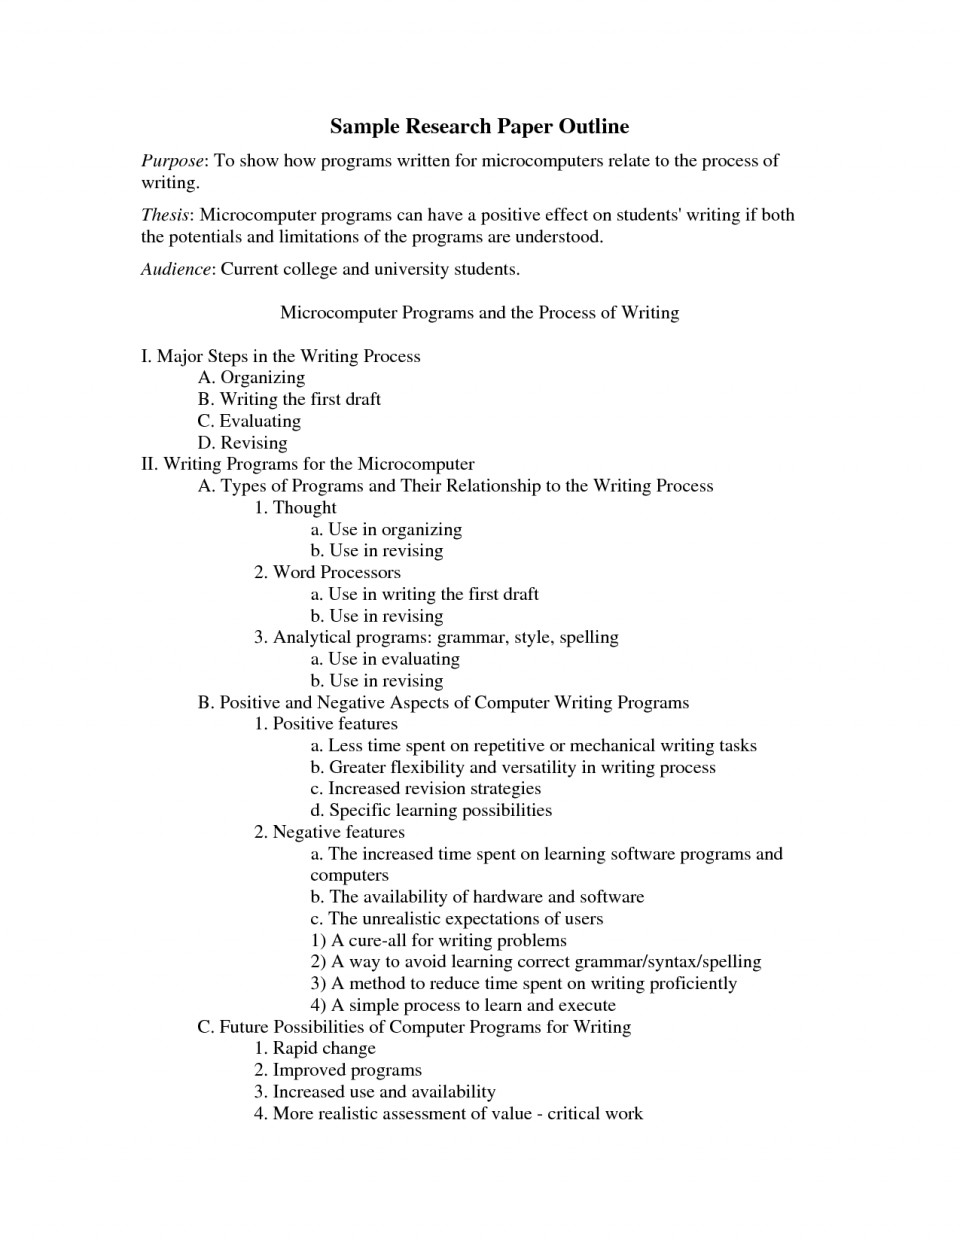 003 College Research Paper Outlines 477364 How To Do An For Stupendous Outline A Example Write Sample 960